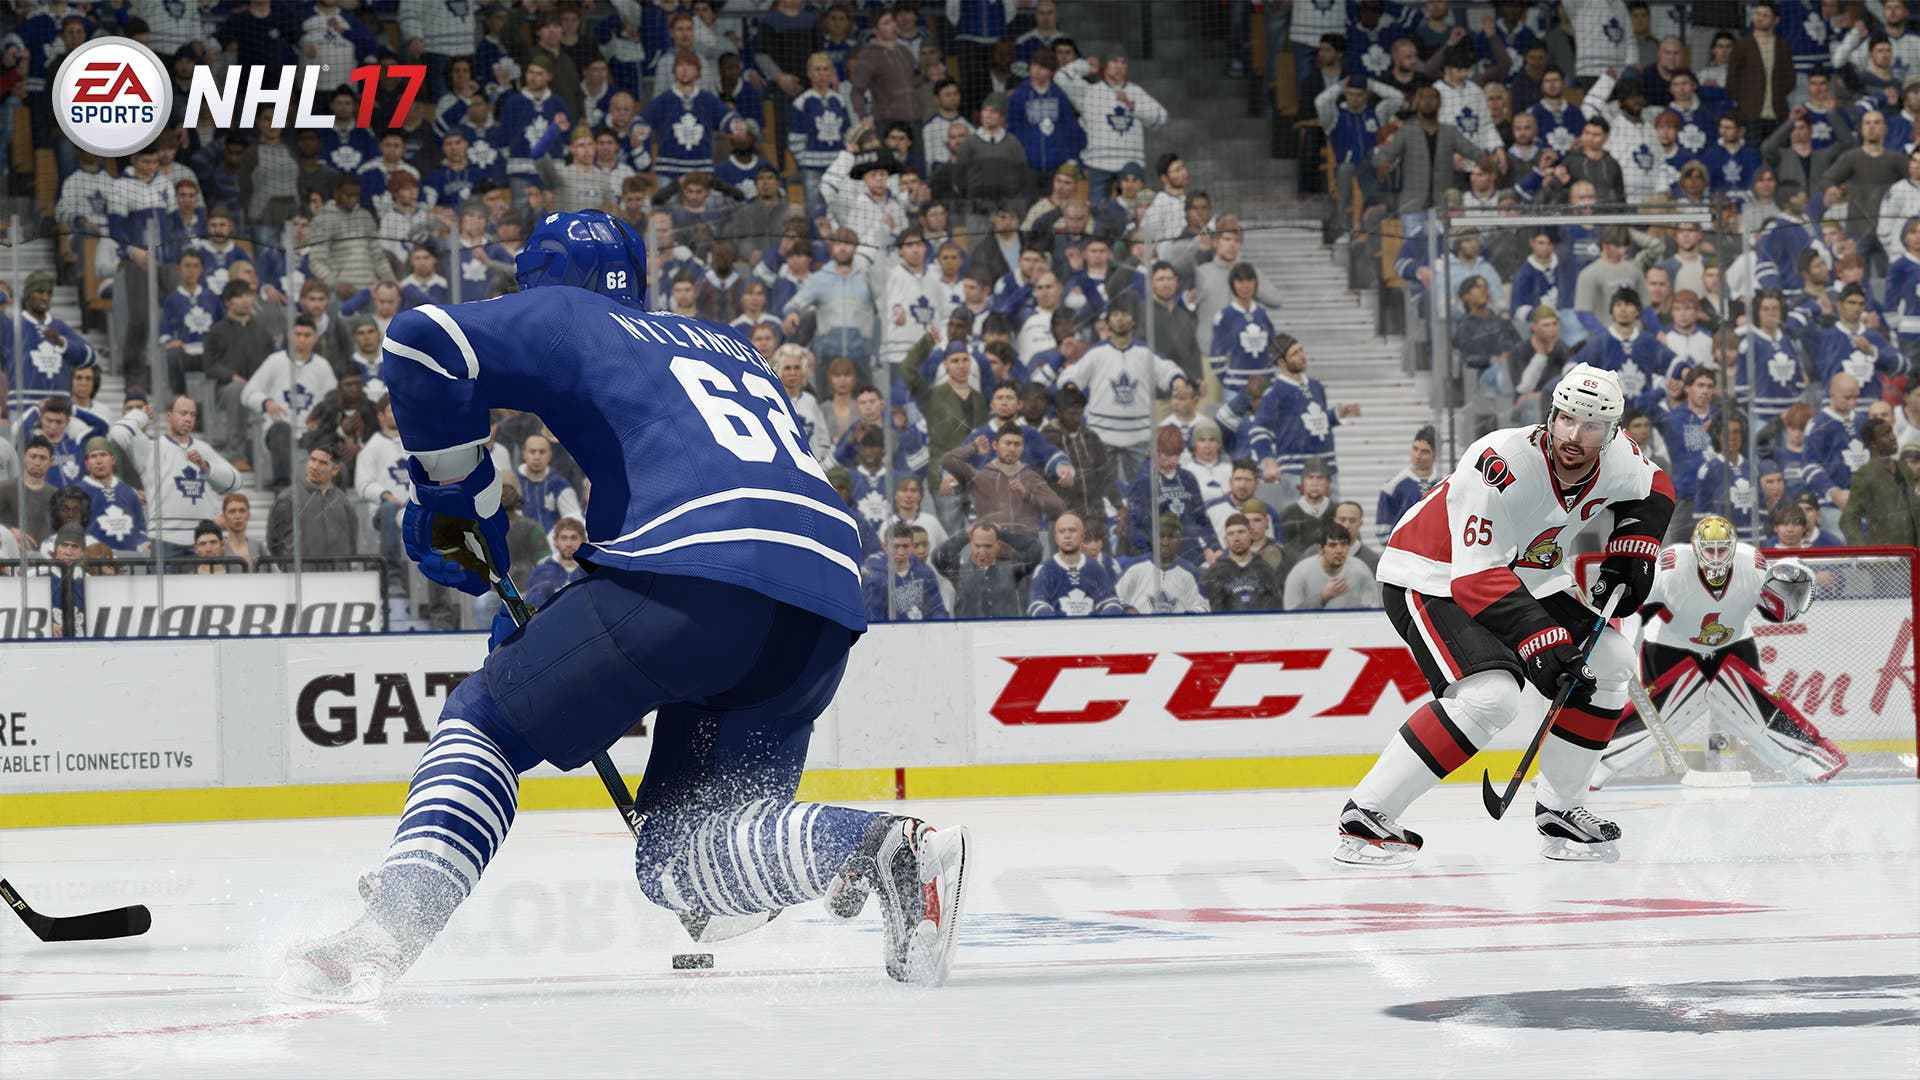 nhl17-nylander-firstlook_1920x10801-1